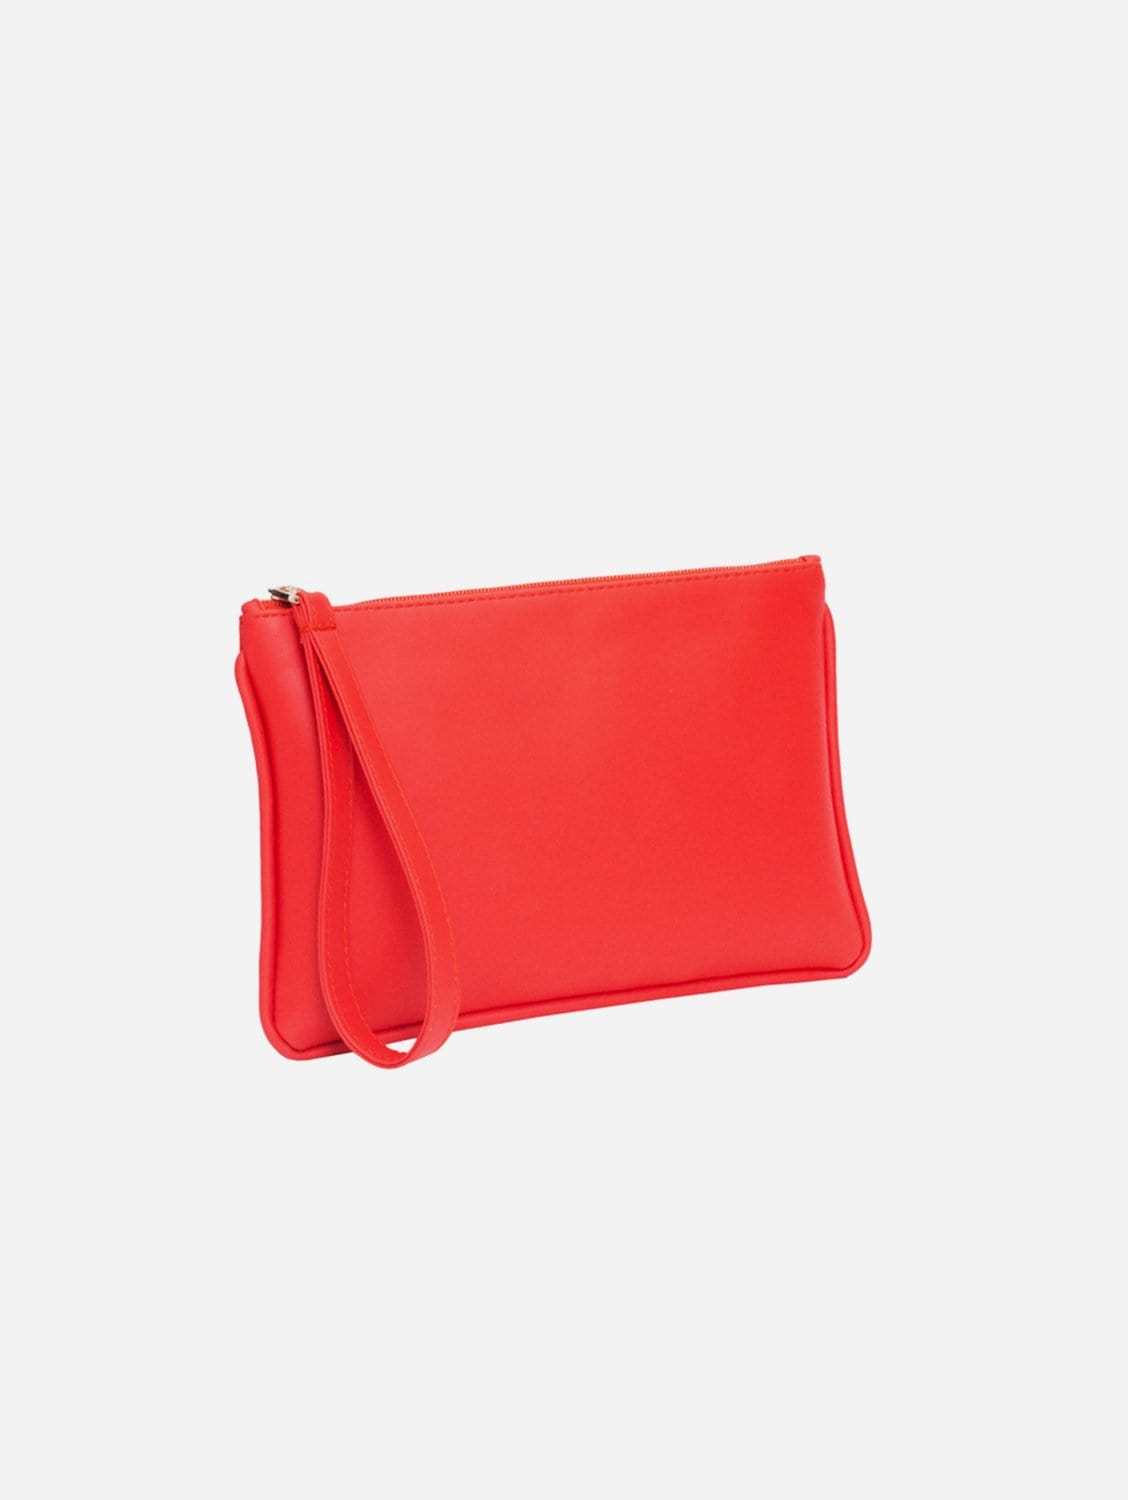 Vegan Leather Pouch Clutch | Rouge